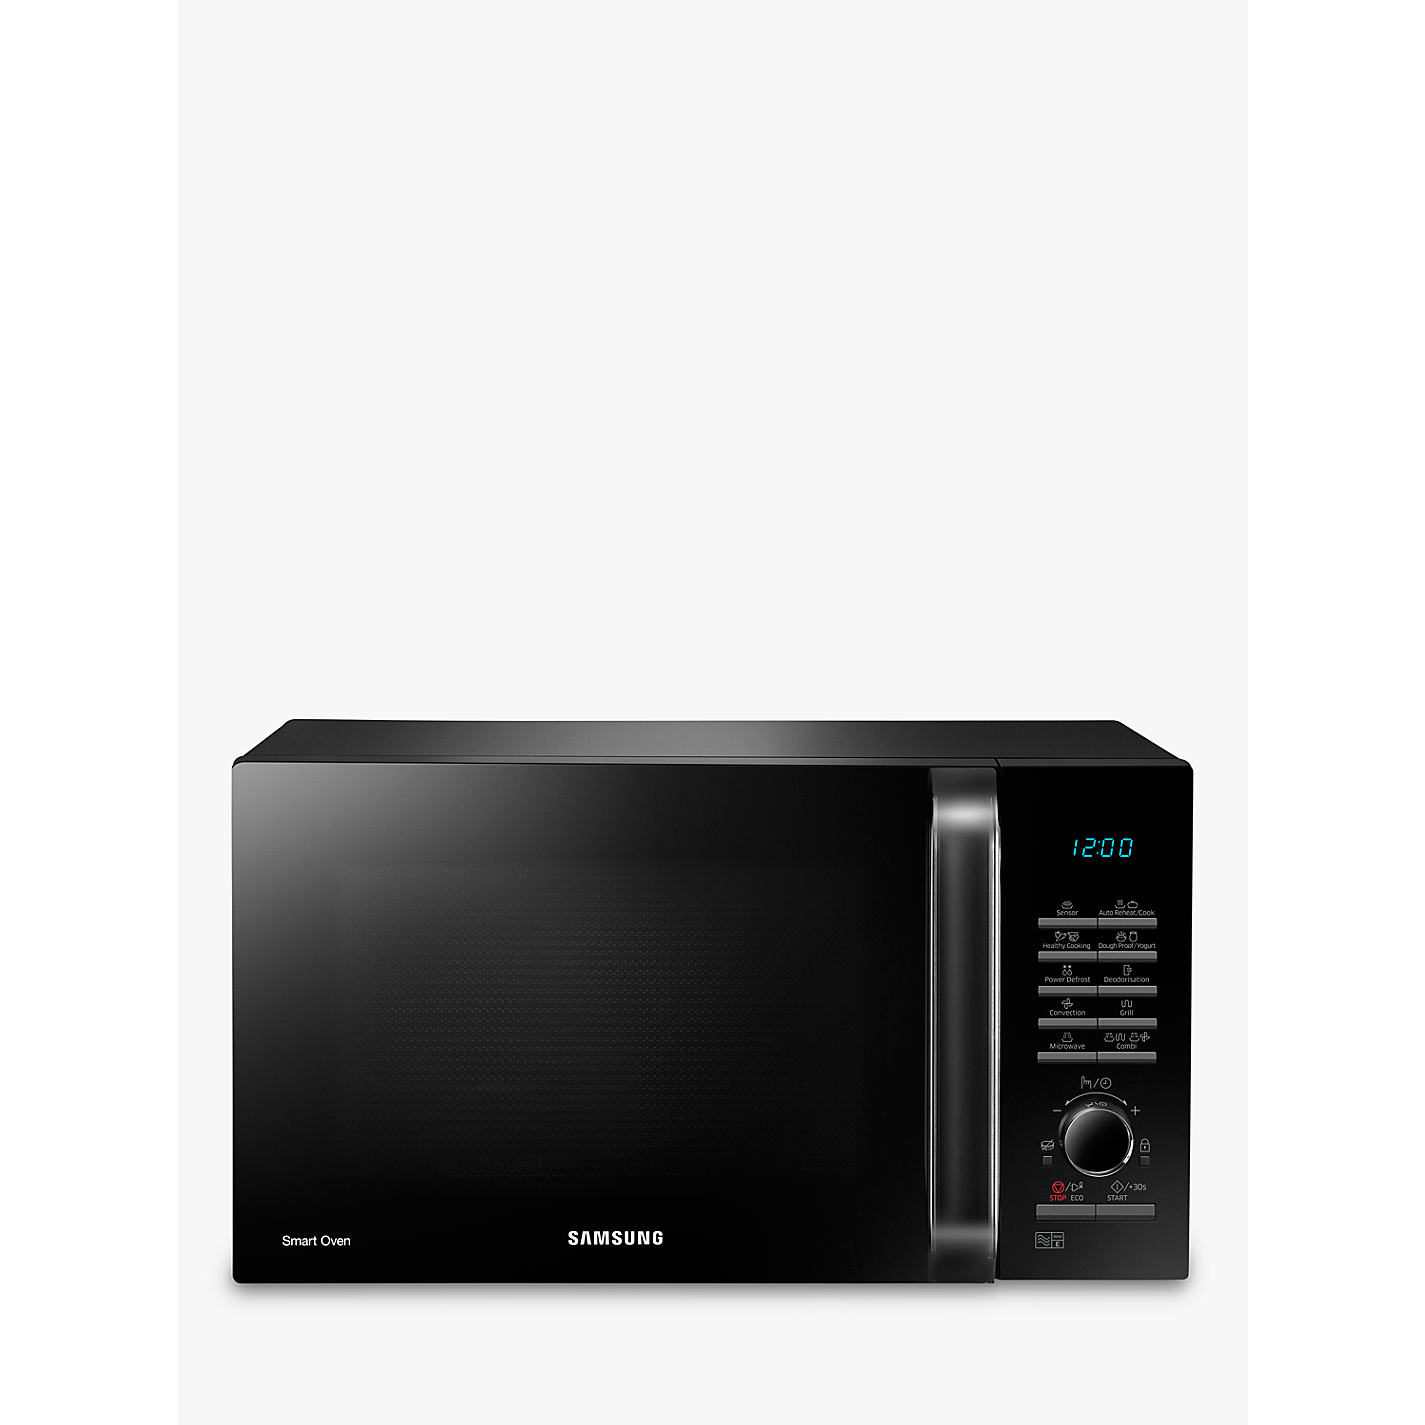 Bundle Appliance Deals Microwave Deals Cooker Deals John Lewis